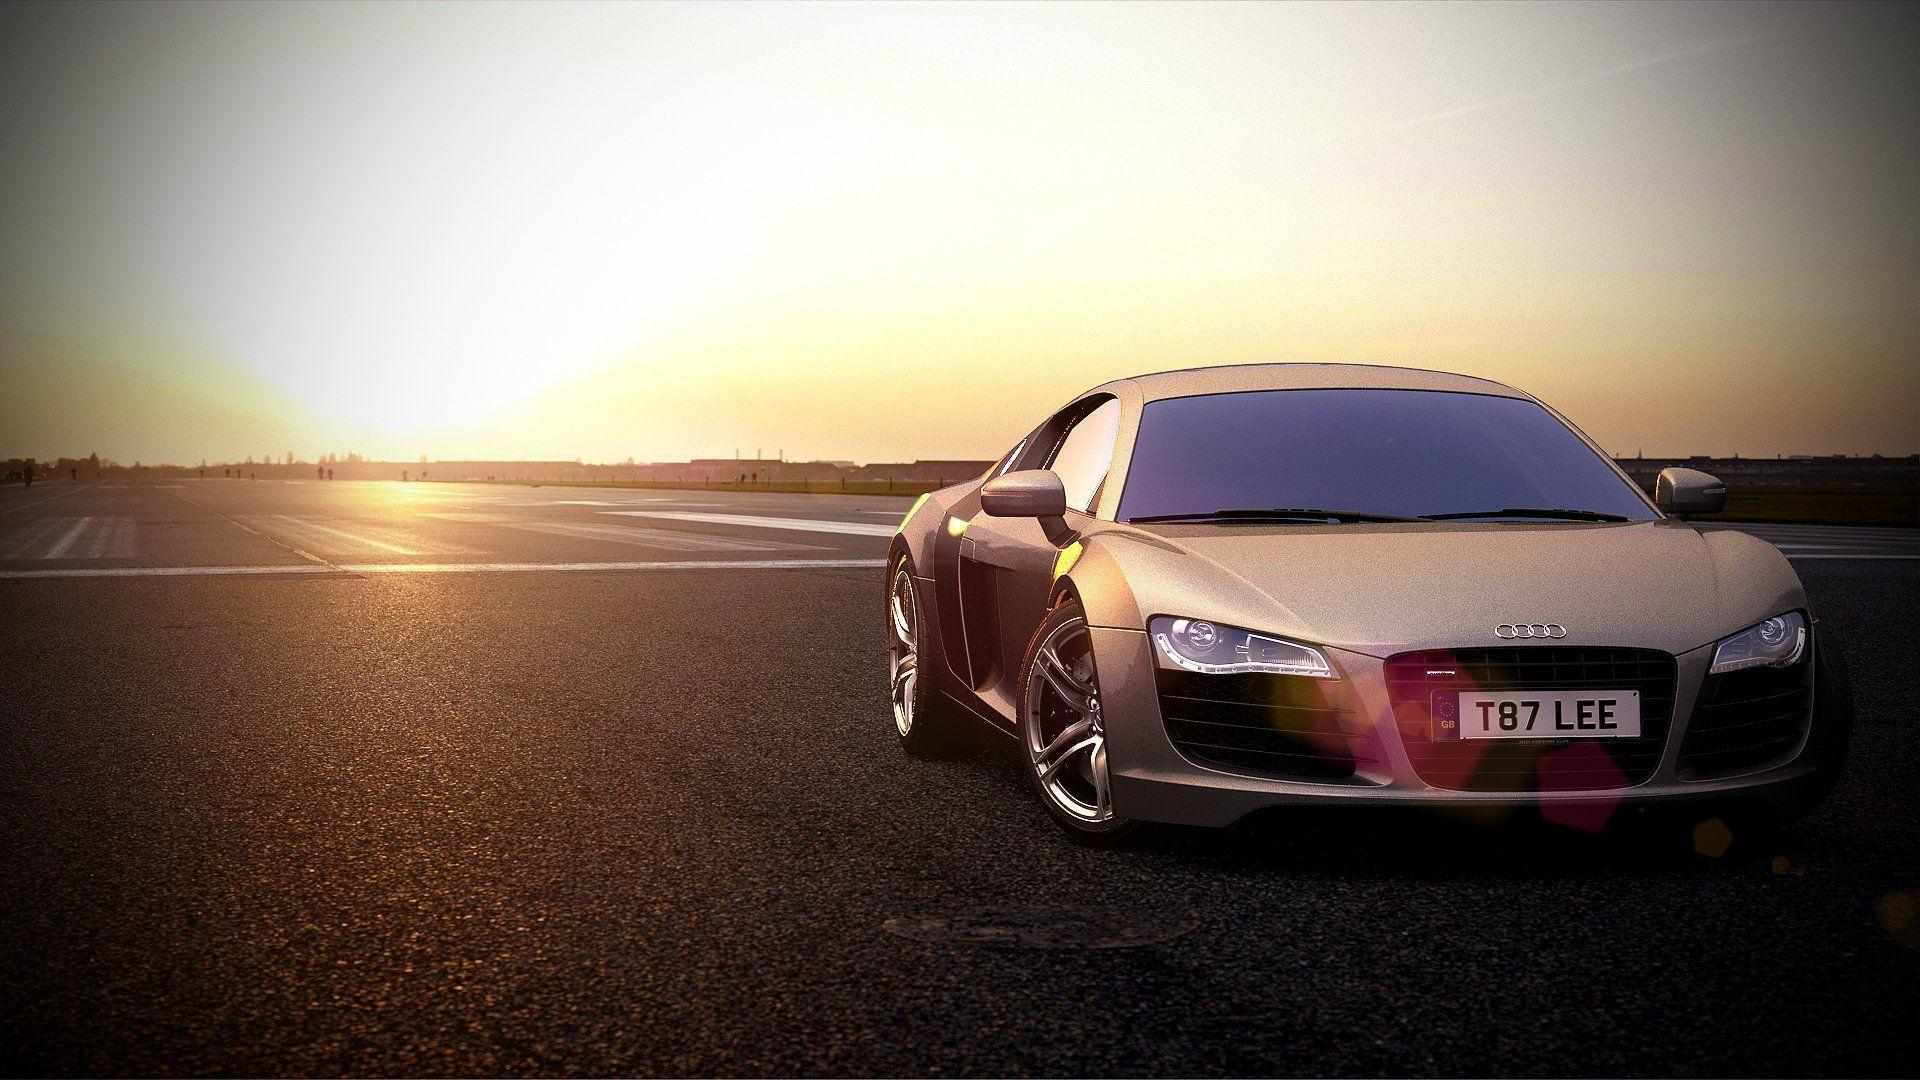 1518 Audi HD Wallpapers | Background Images - Wallpaper Abyss